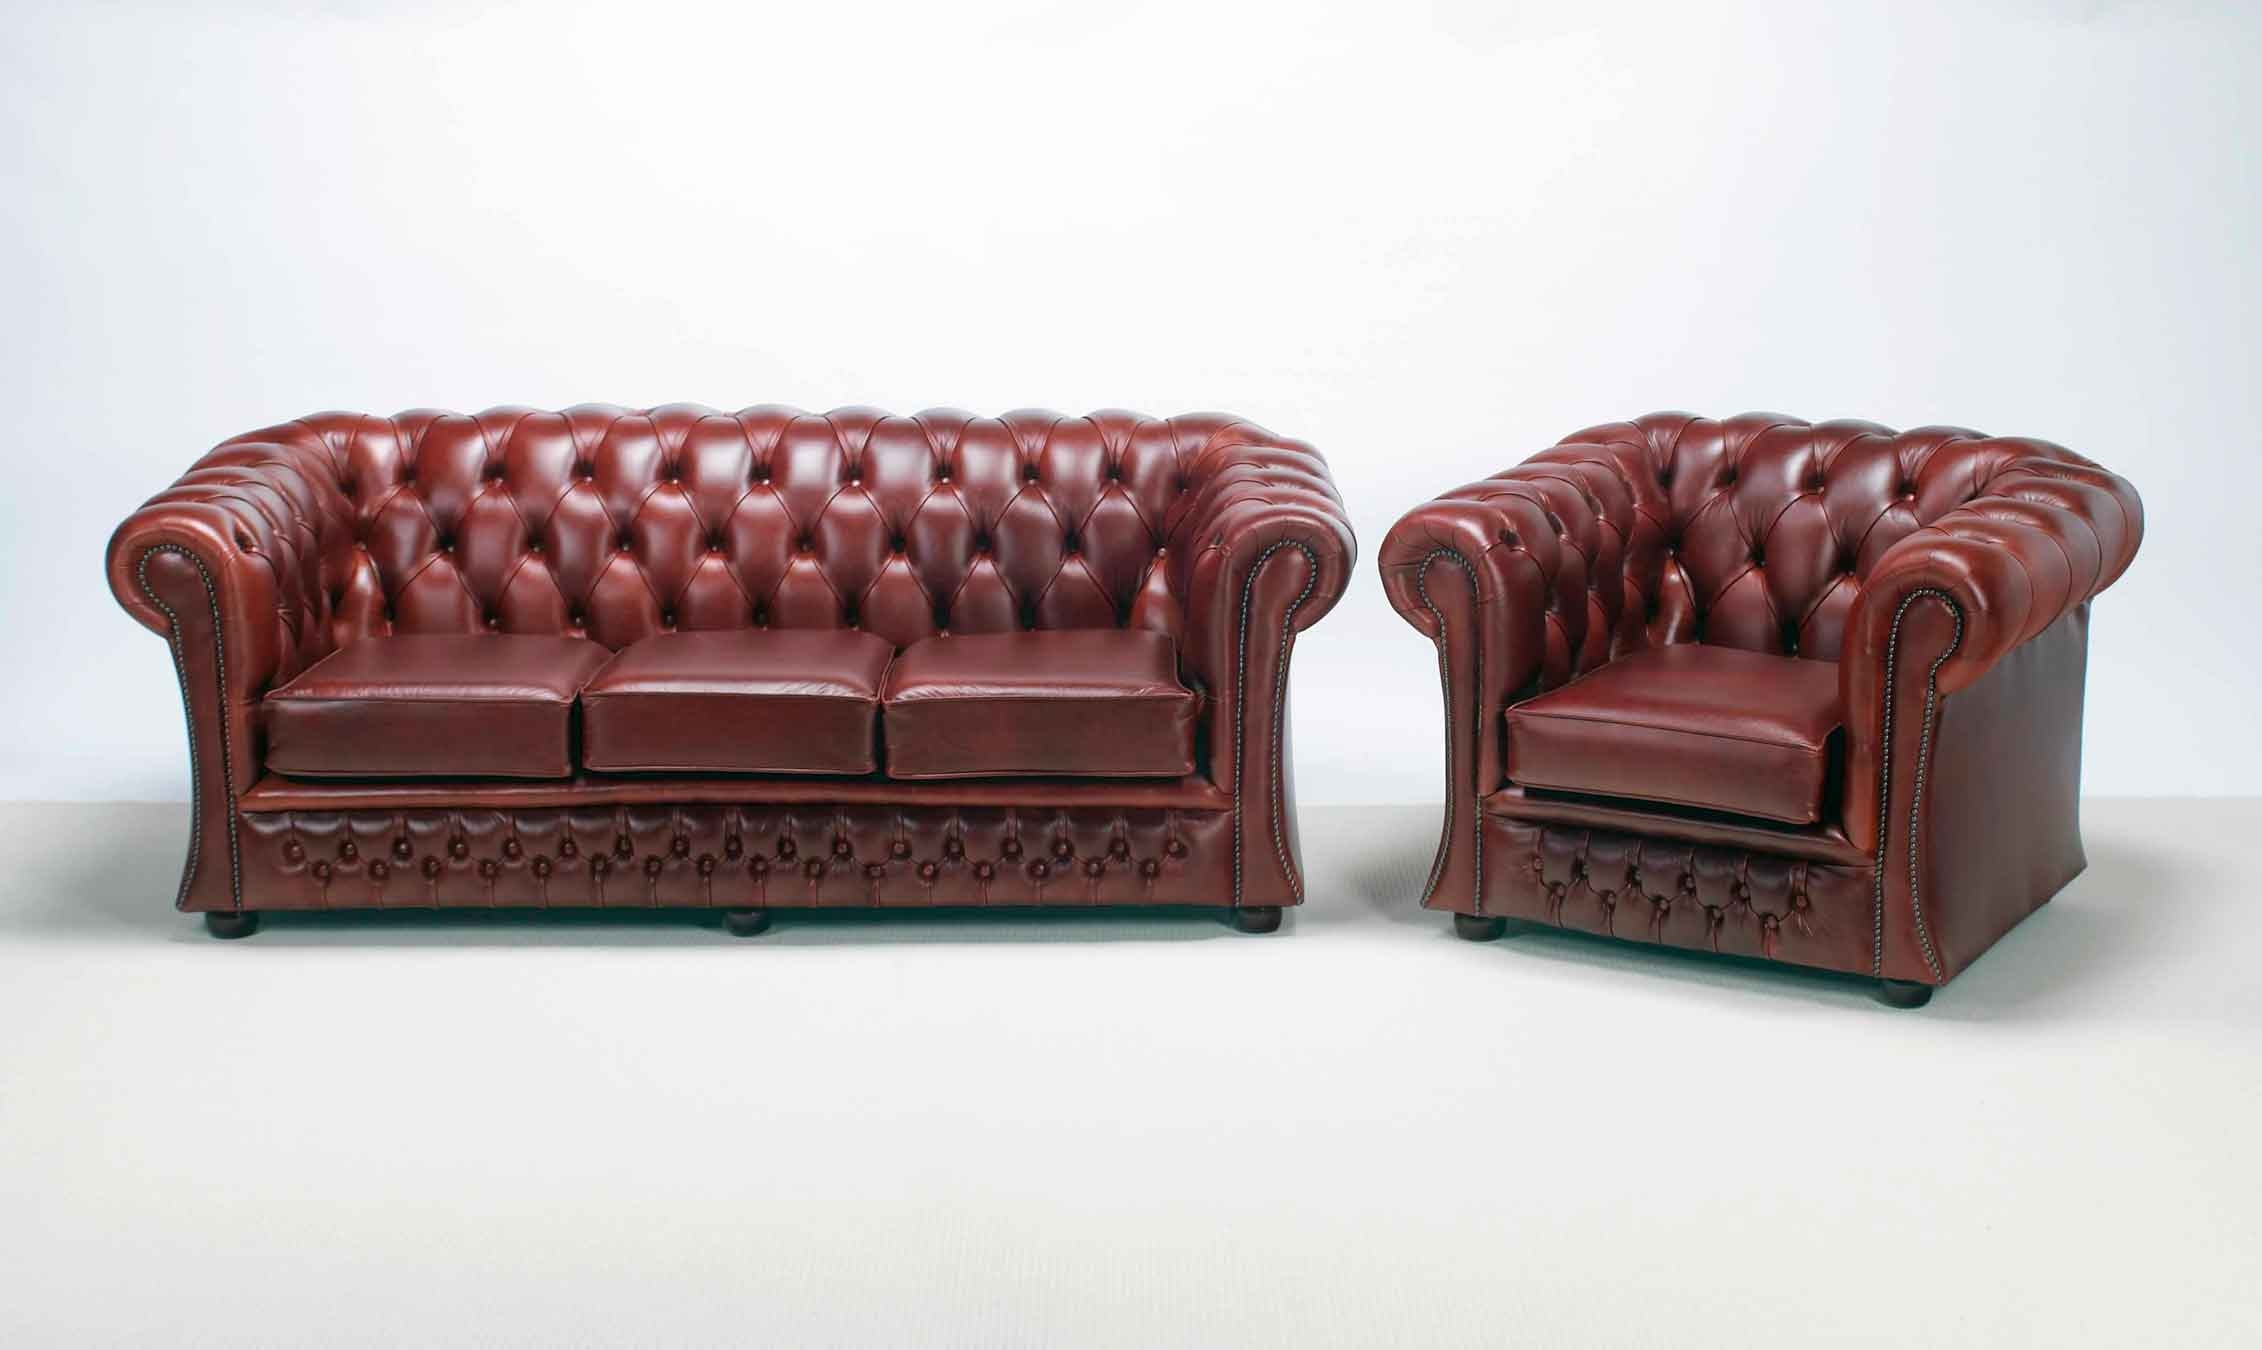 Furniture Have A Luxury Living Room With The Elegant Chesterfield Regarding Chesterfield Sofas And Chairs (Image 10 of 15)